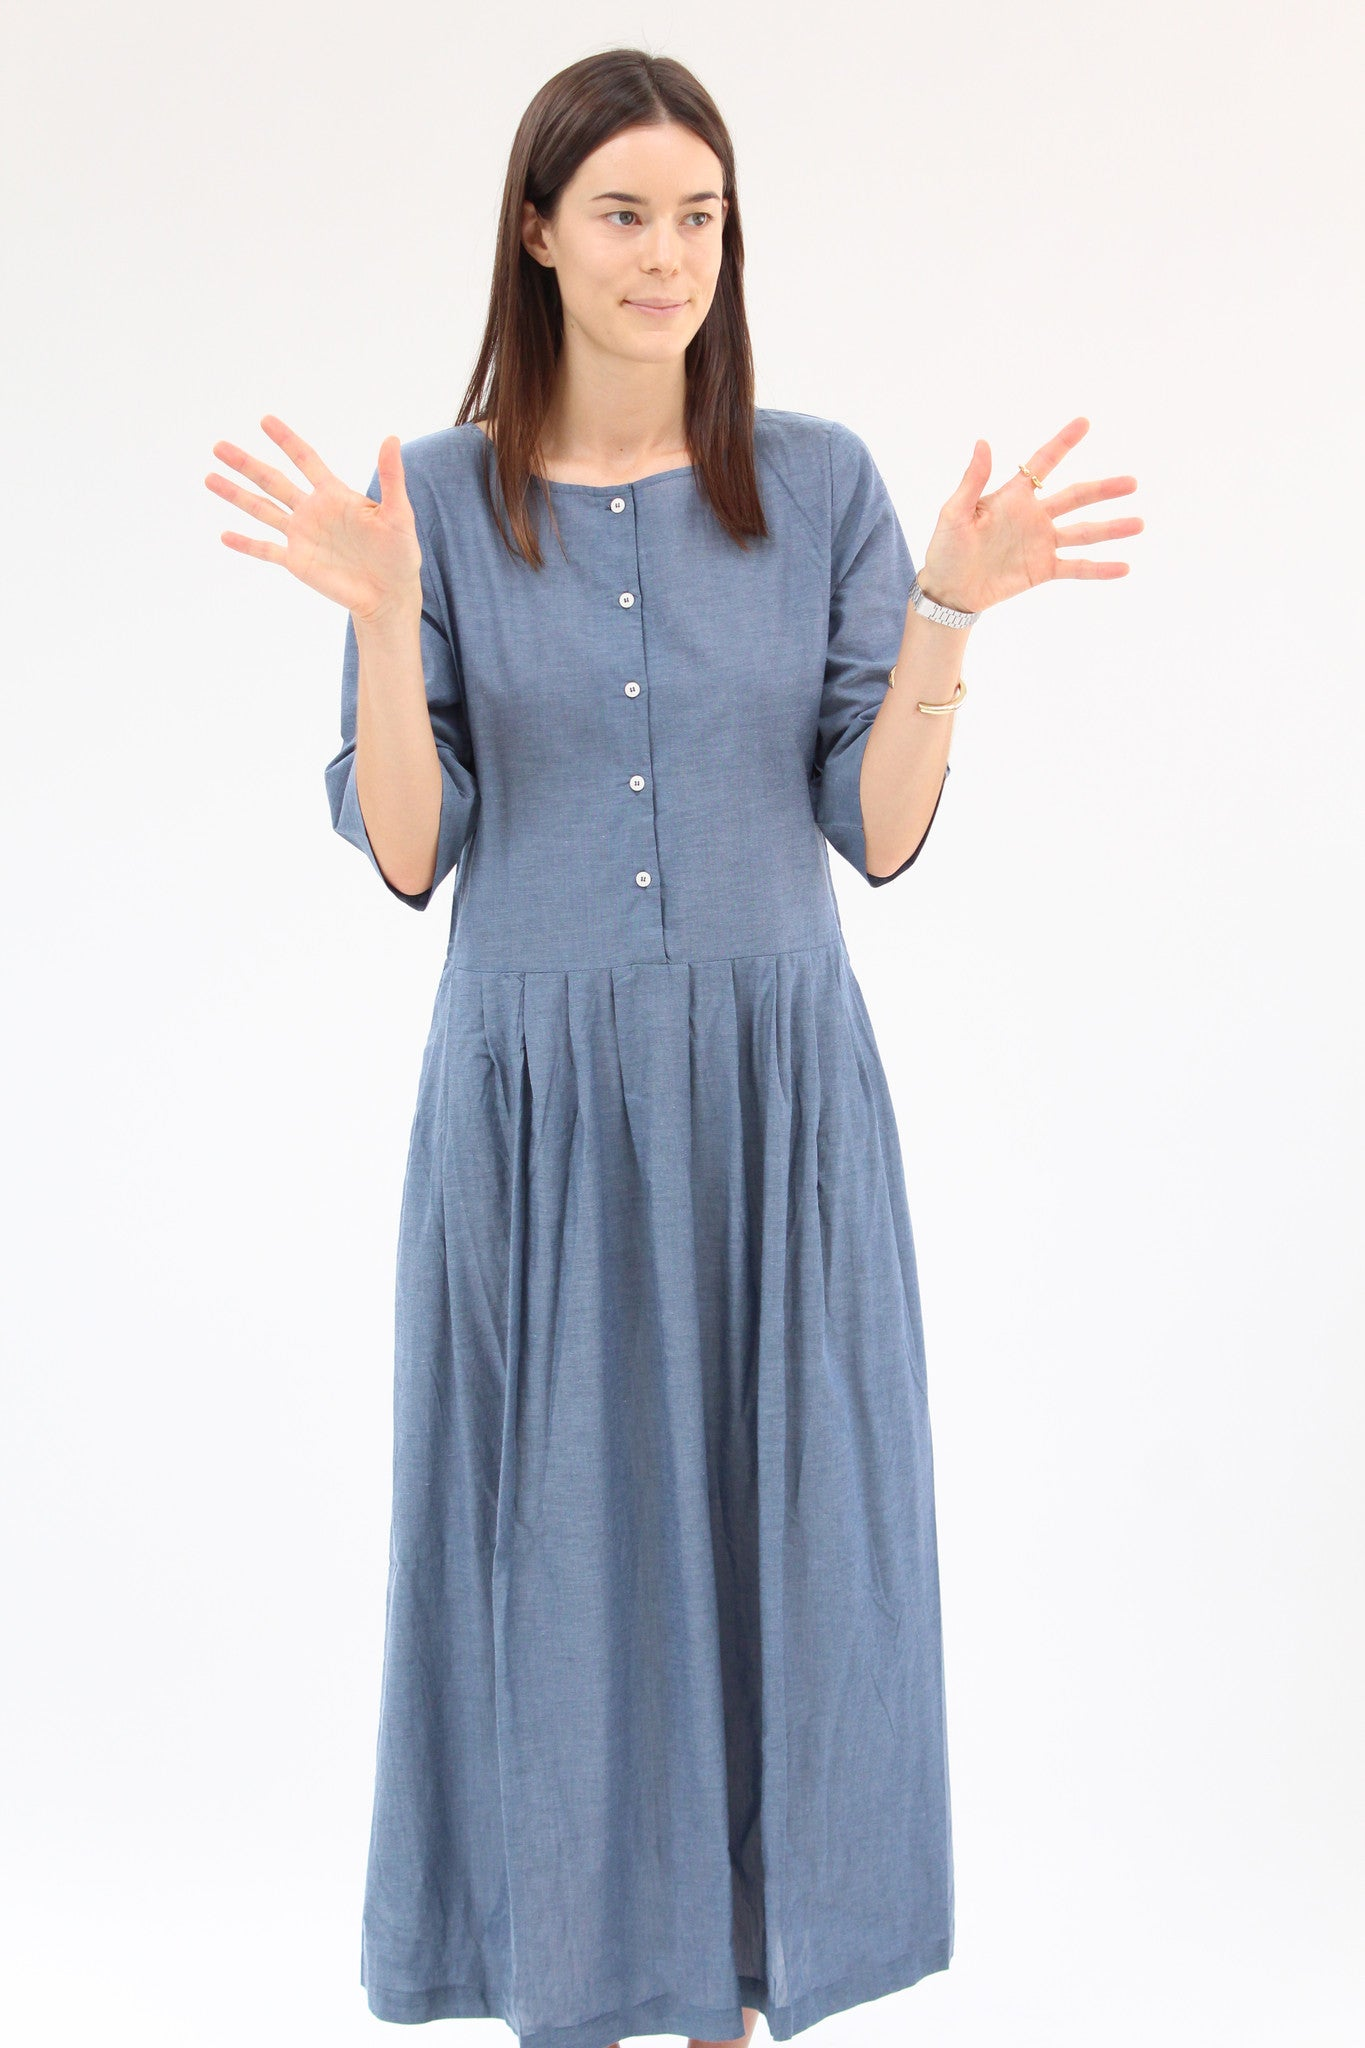 Kowtow Momentum Dress Chambray / Beklina